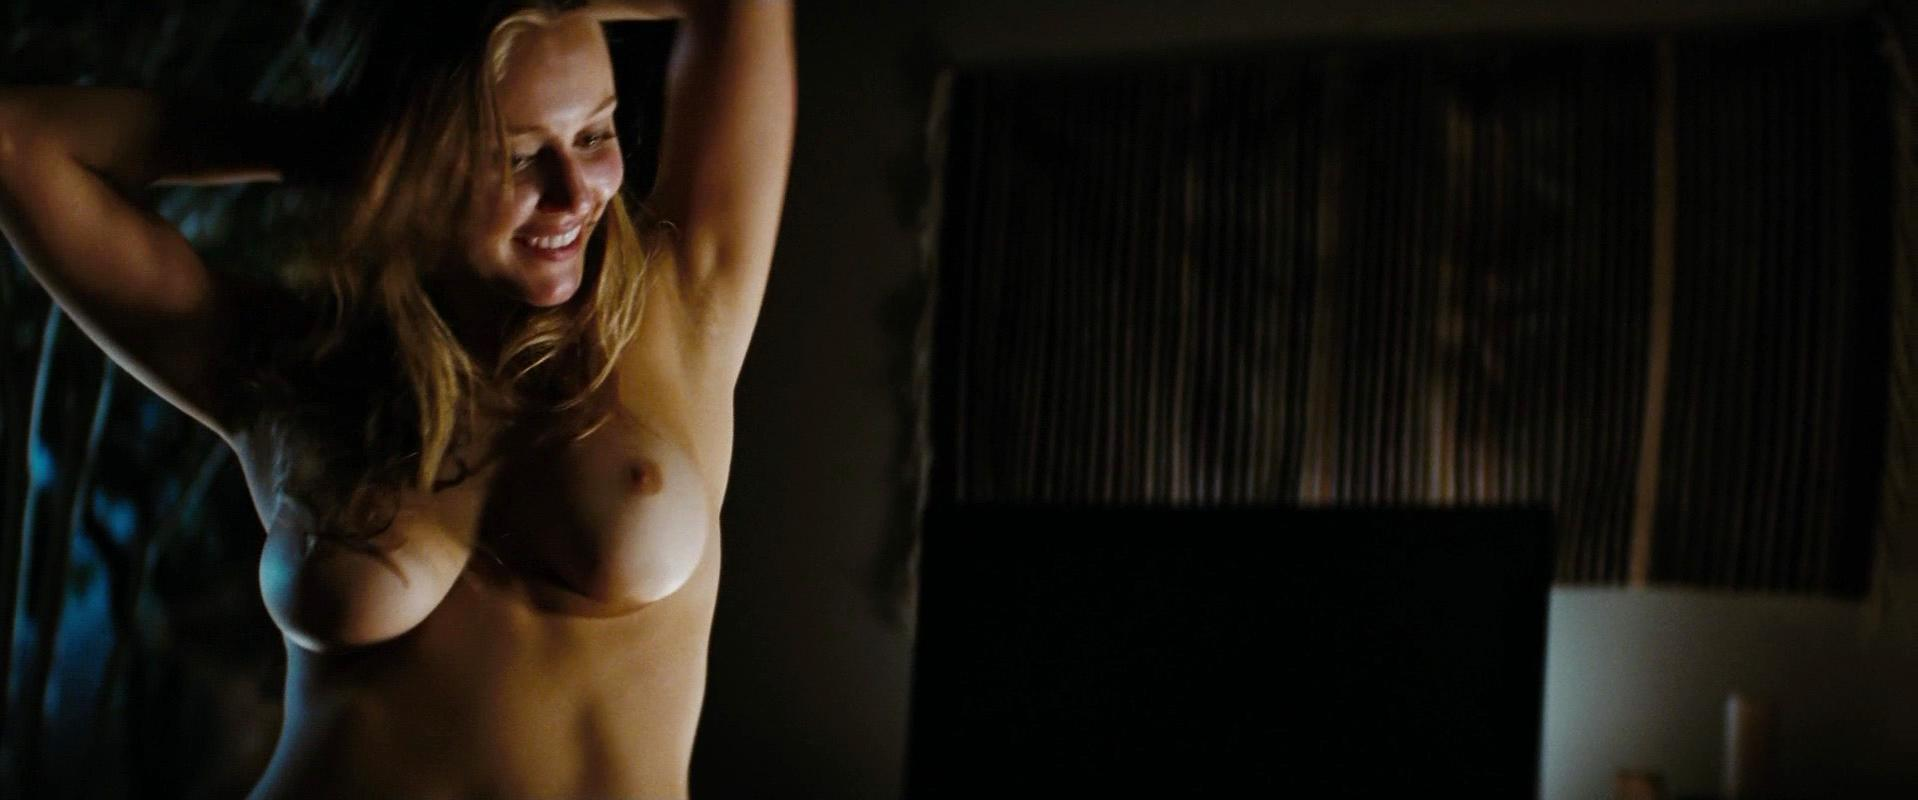 Julianna Guill with her arms up.jpg